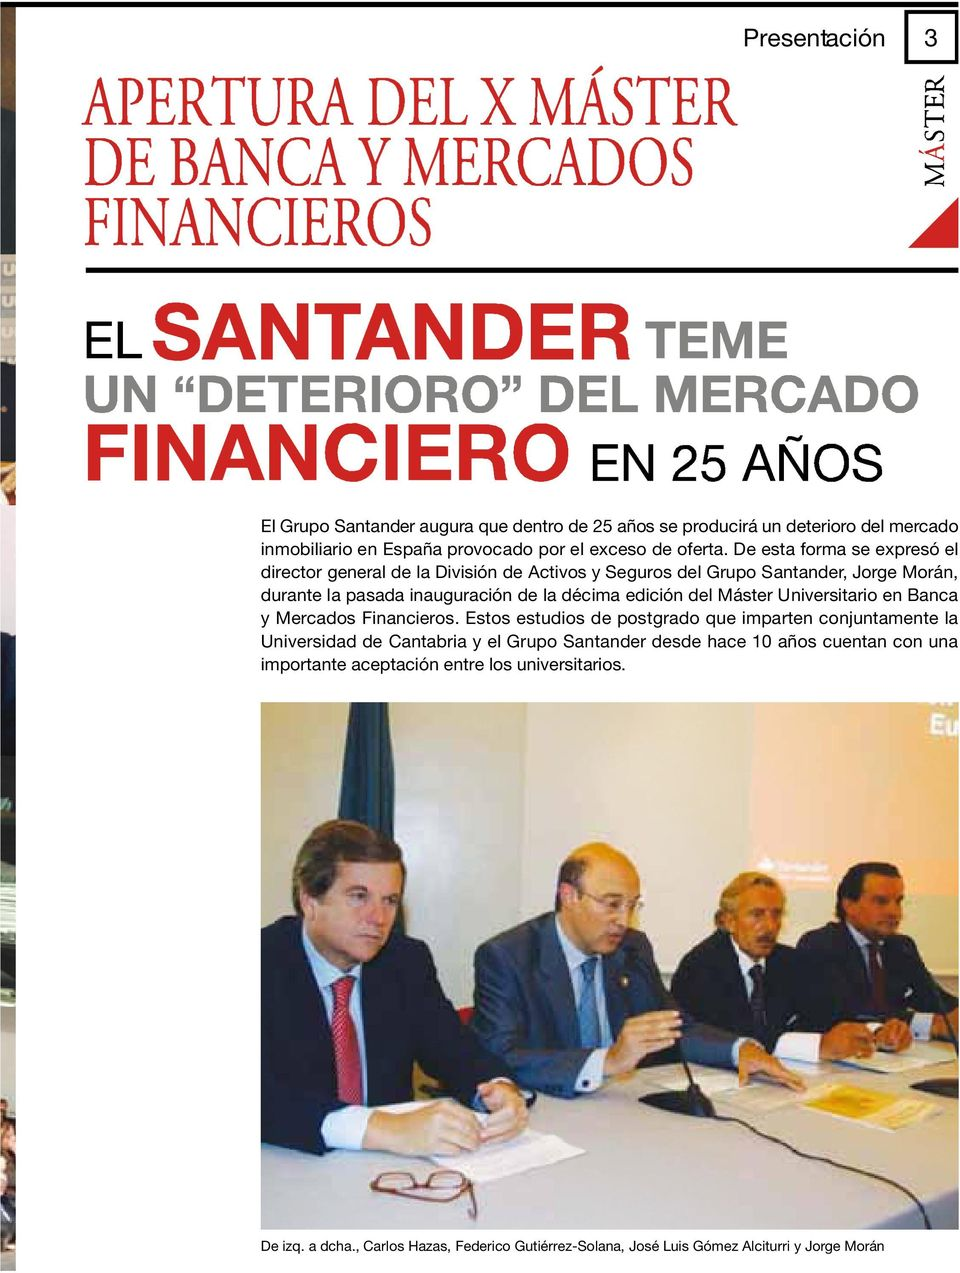 del Máster Universitario en Banca y Mercados Financieros.